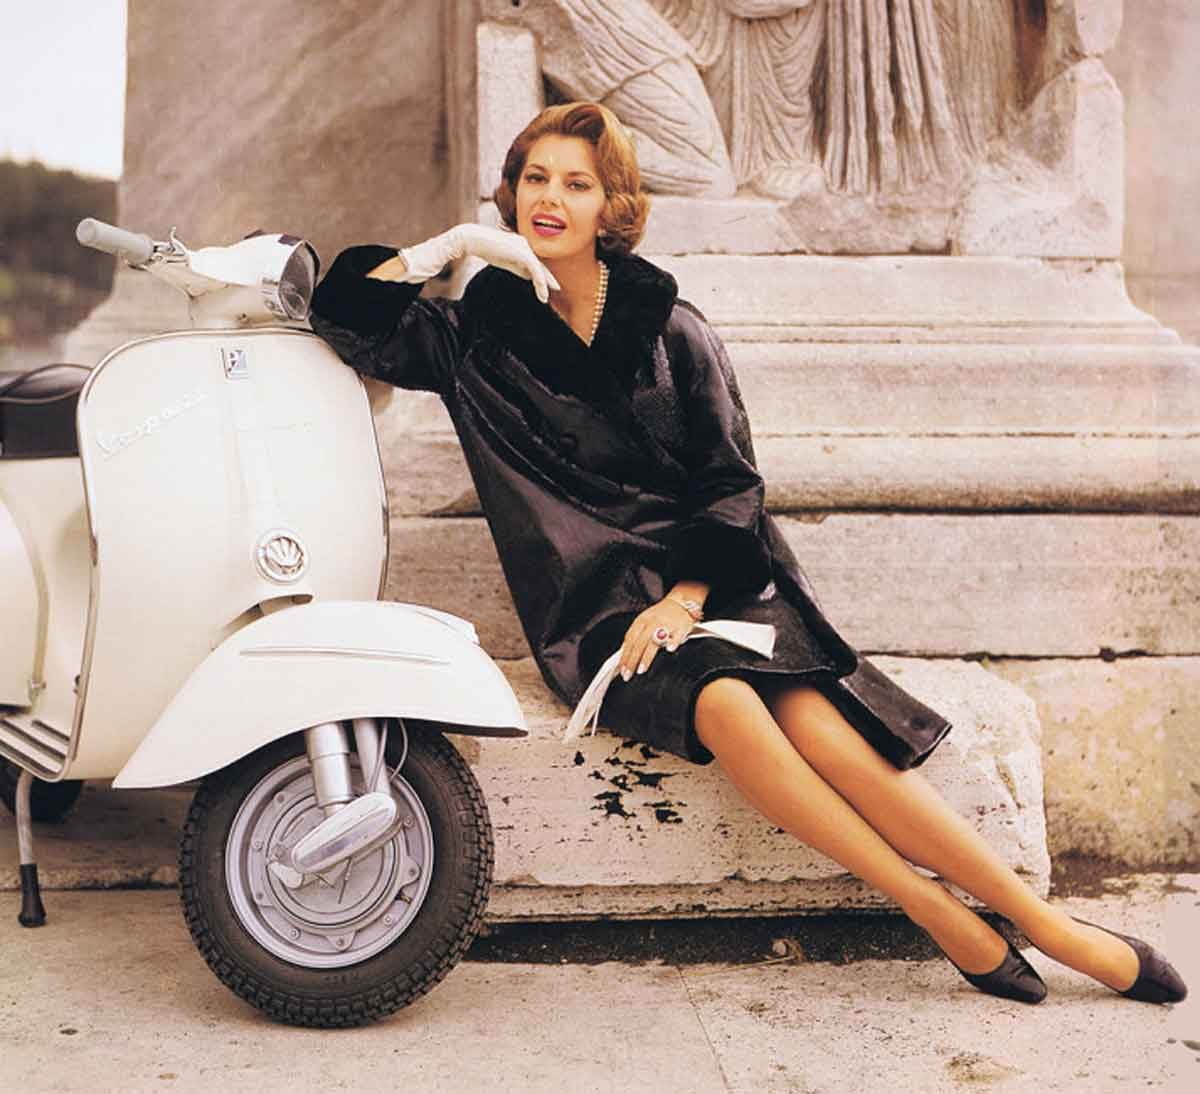 Vespa-Chic---How-the-world-was-seduced-by-a-scooter---Cyd-Charisse-